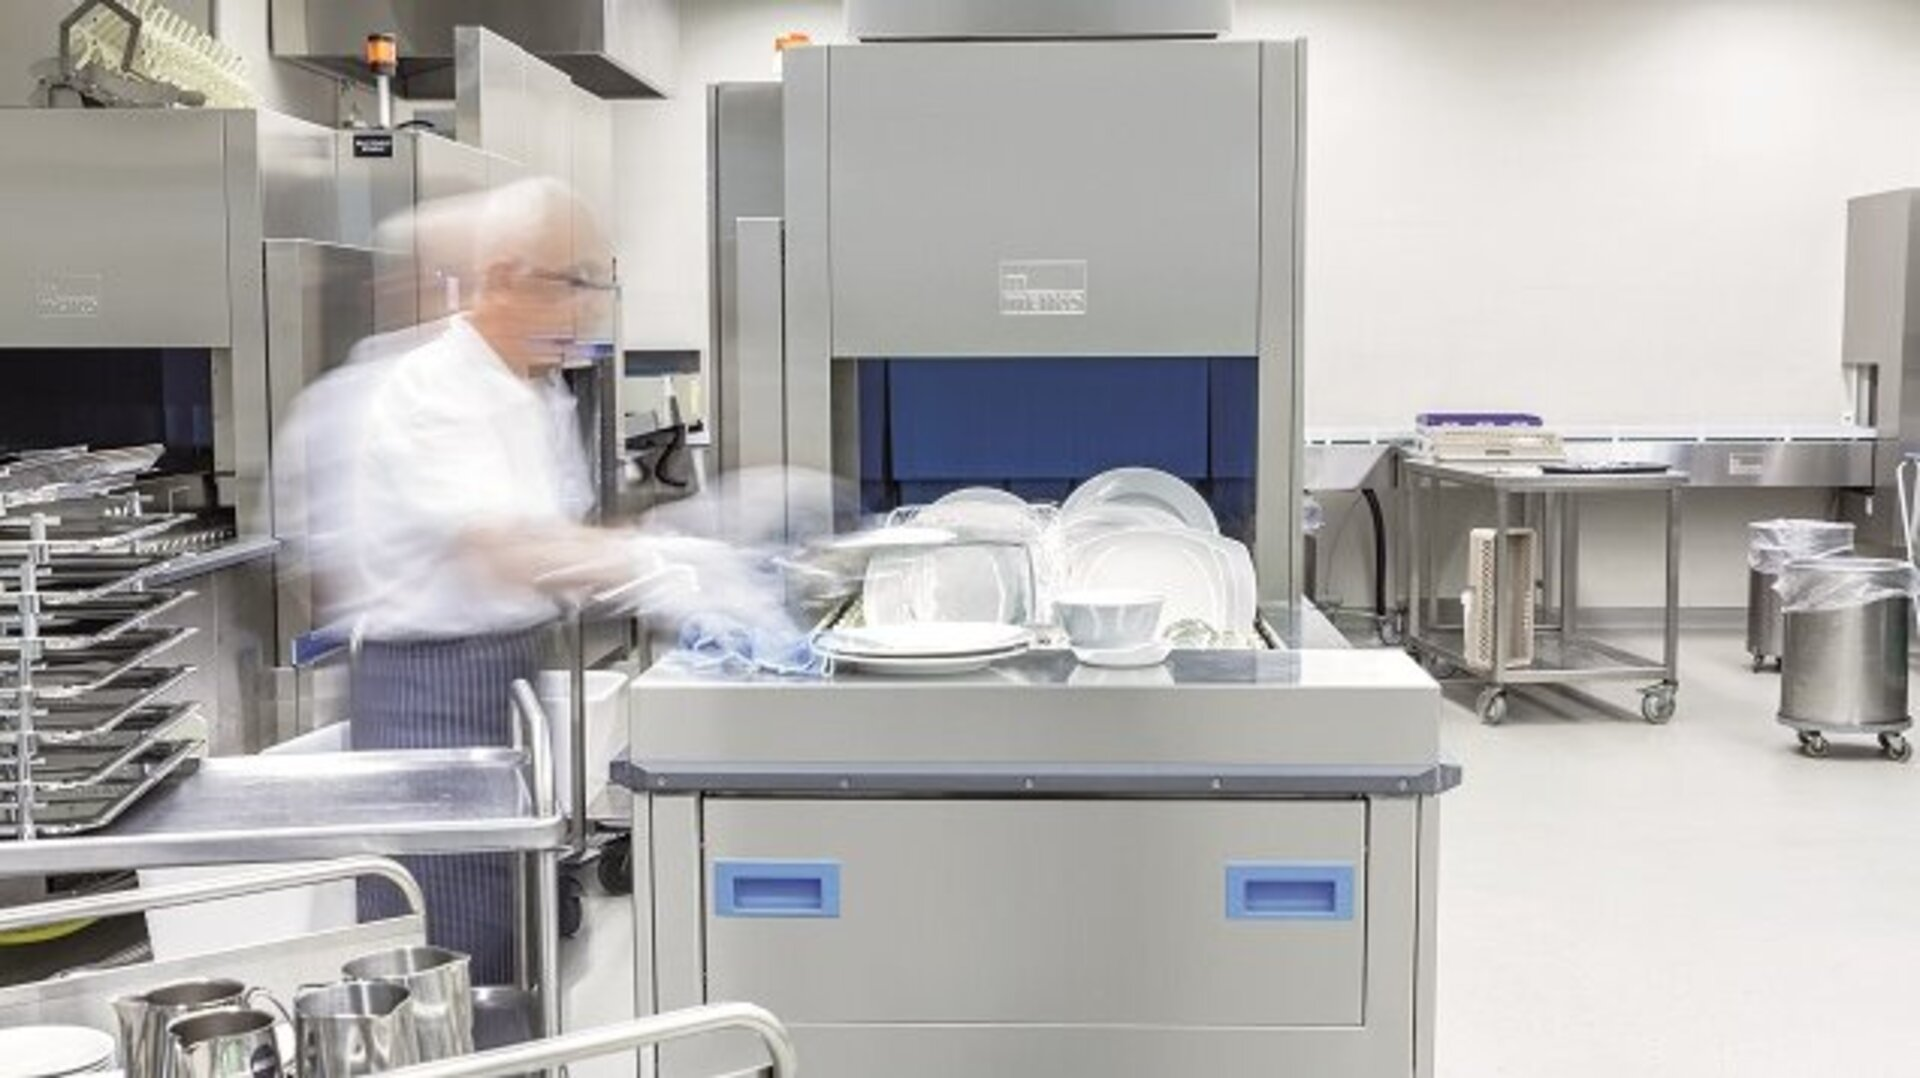 An employee uses a MEIKO industrial dishwasher in a back-of-house kitchen environment